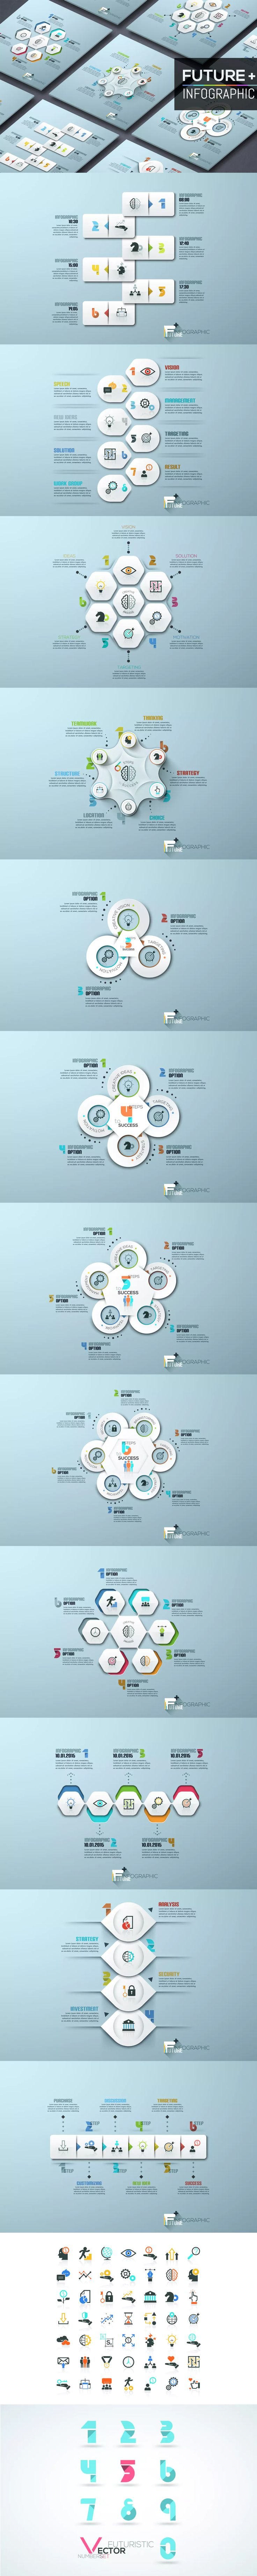 91 best InfoDesign Concepts images on Pinterest   Info graphics ...